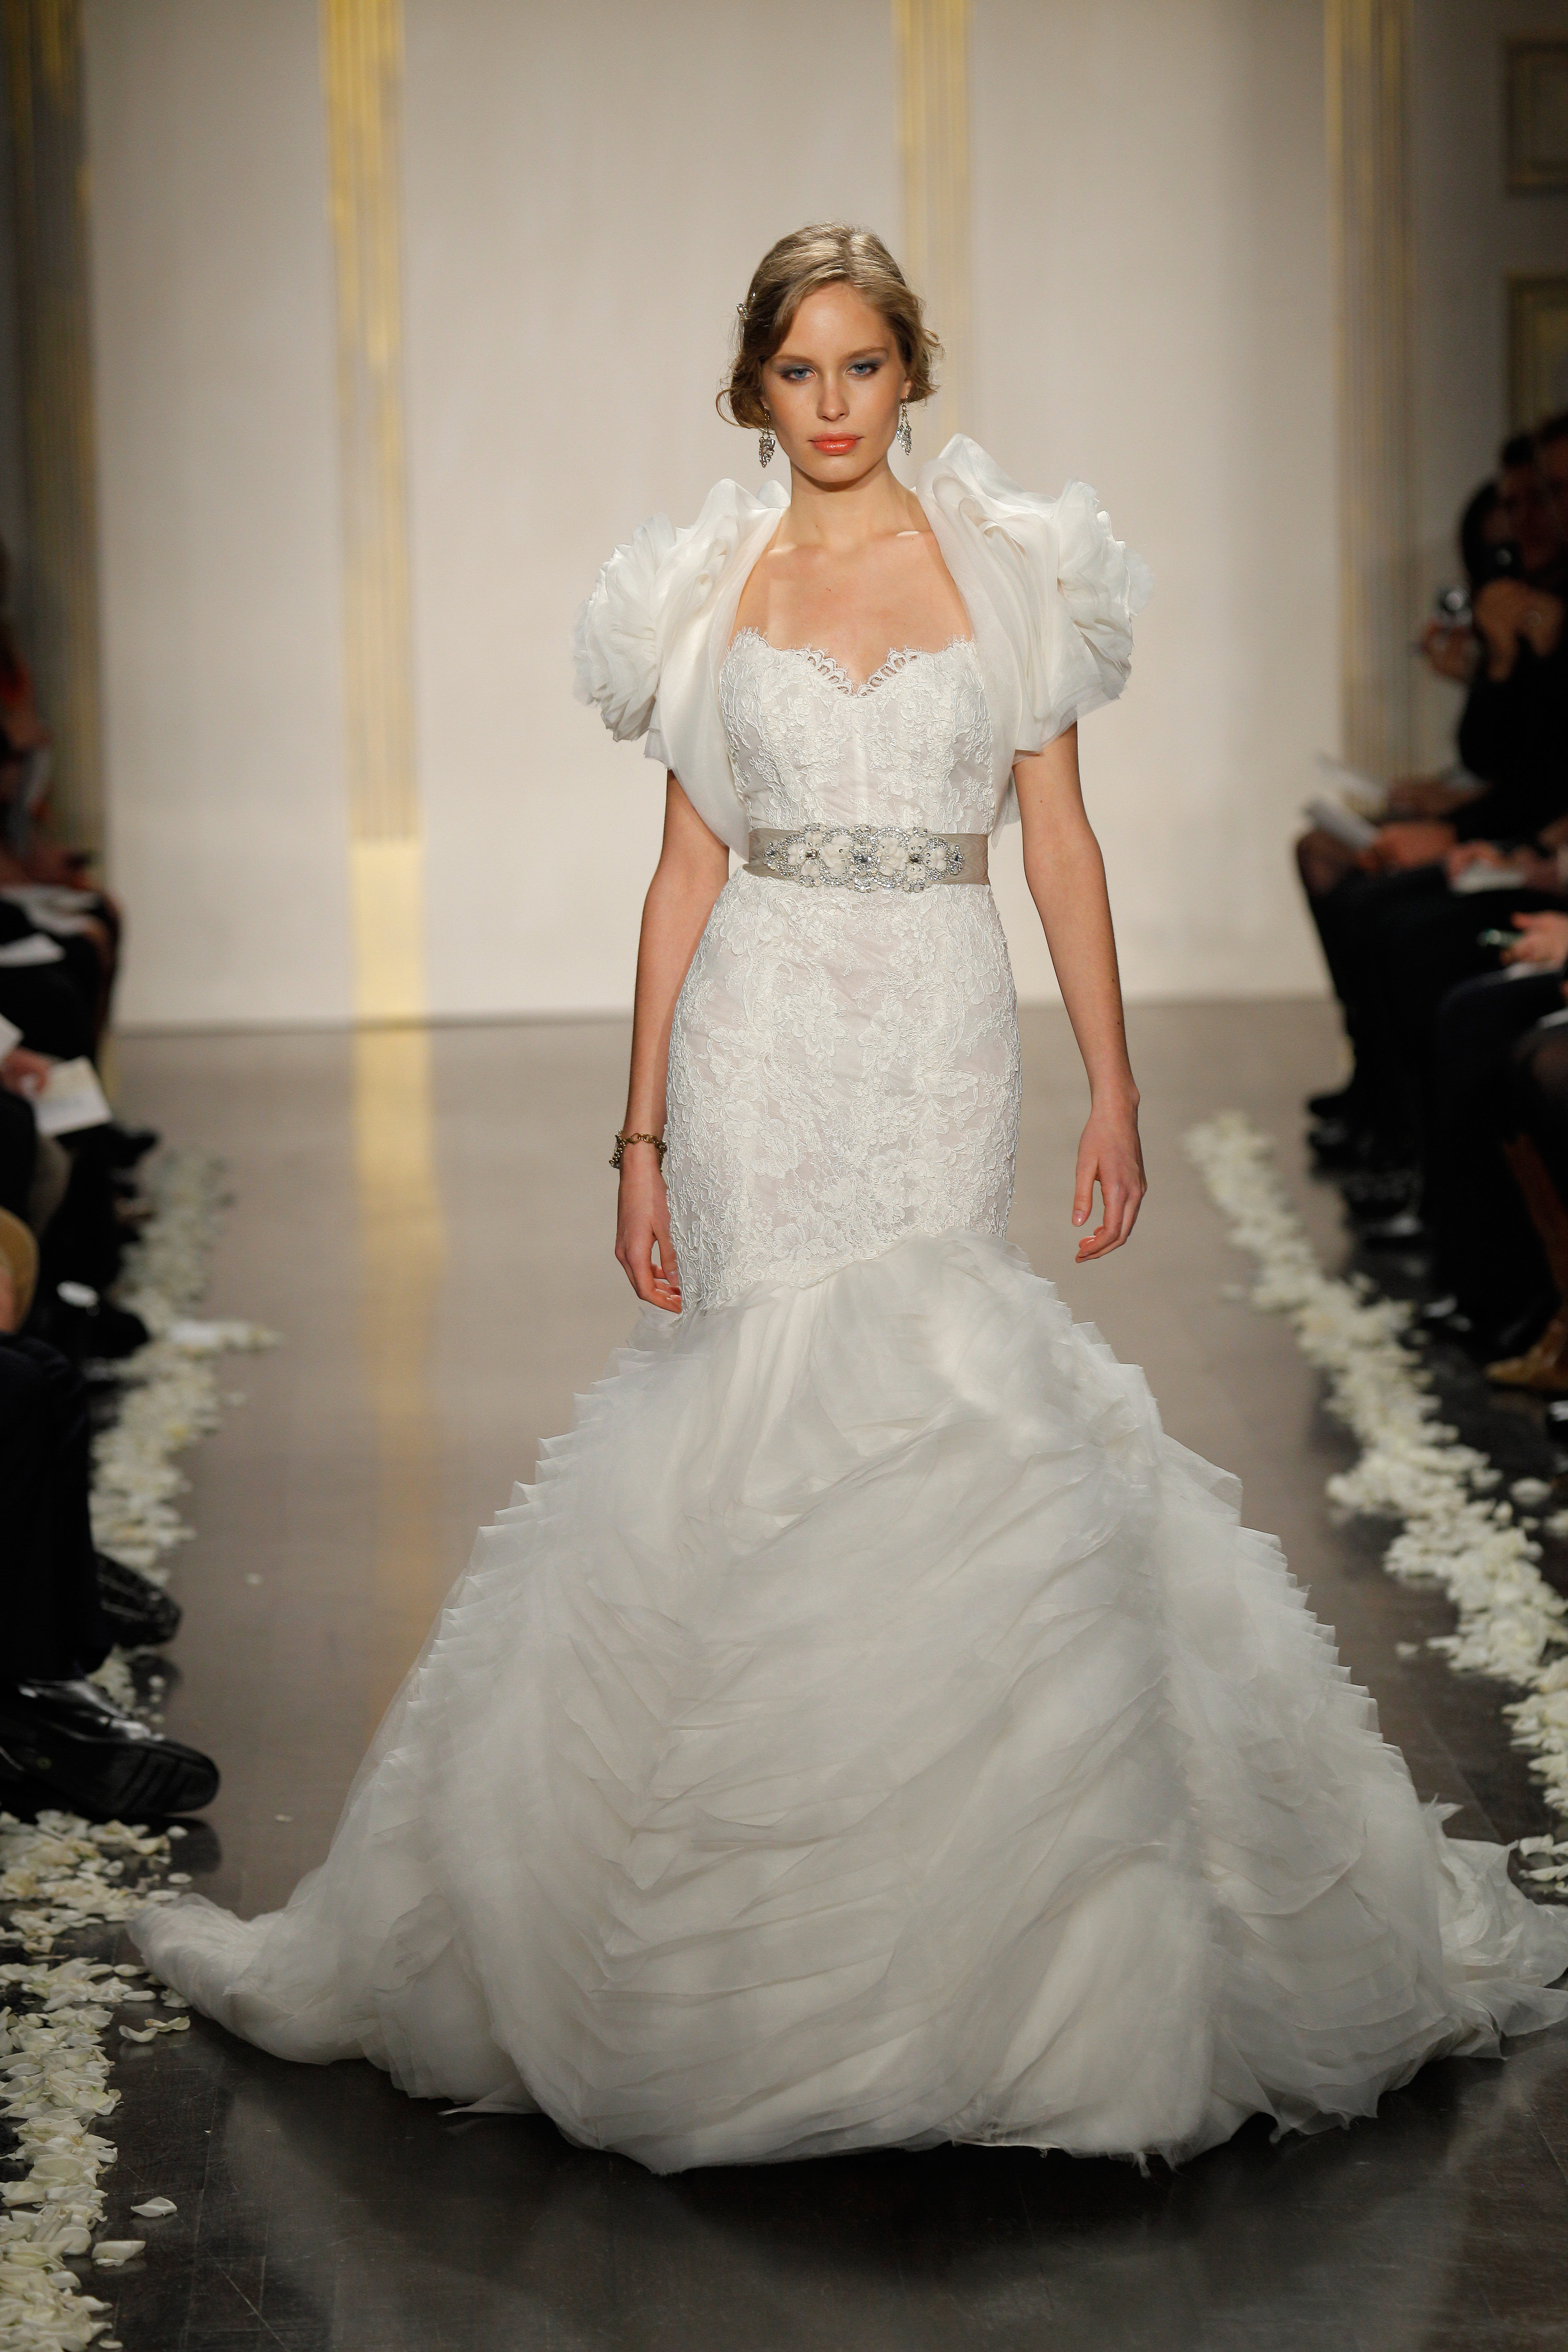 Bridal Gowns and Wedding Dresses by JLM Couture - Style 3201